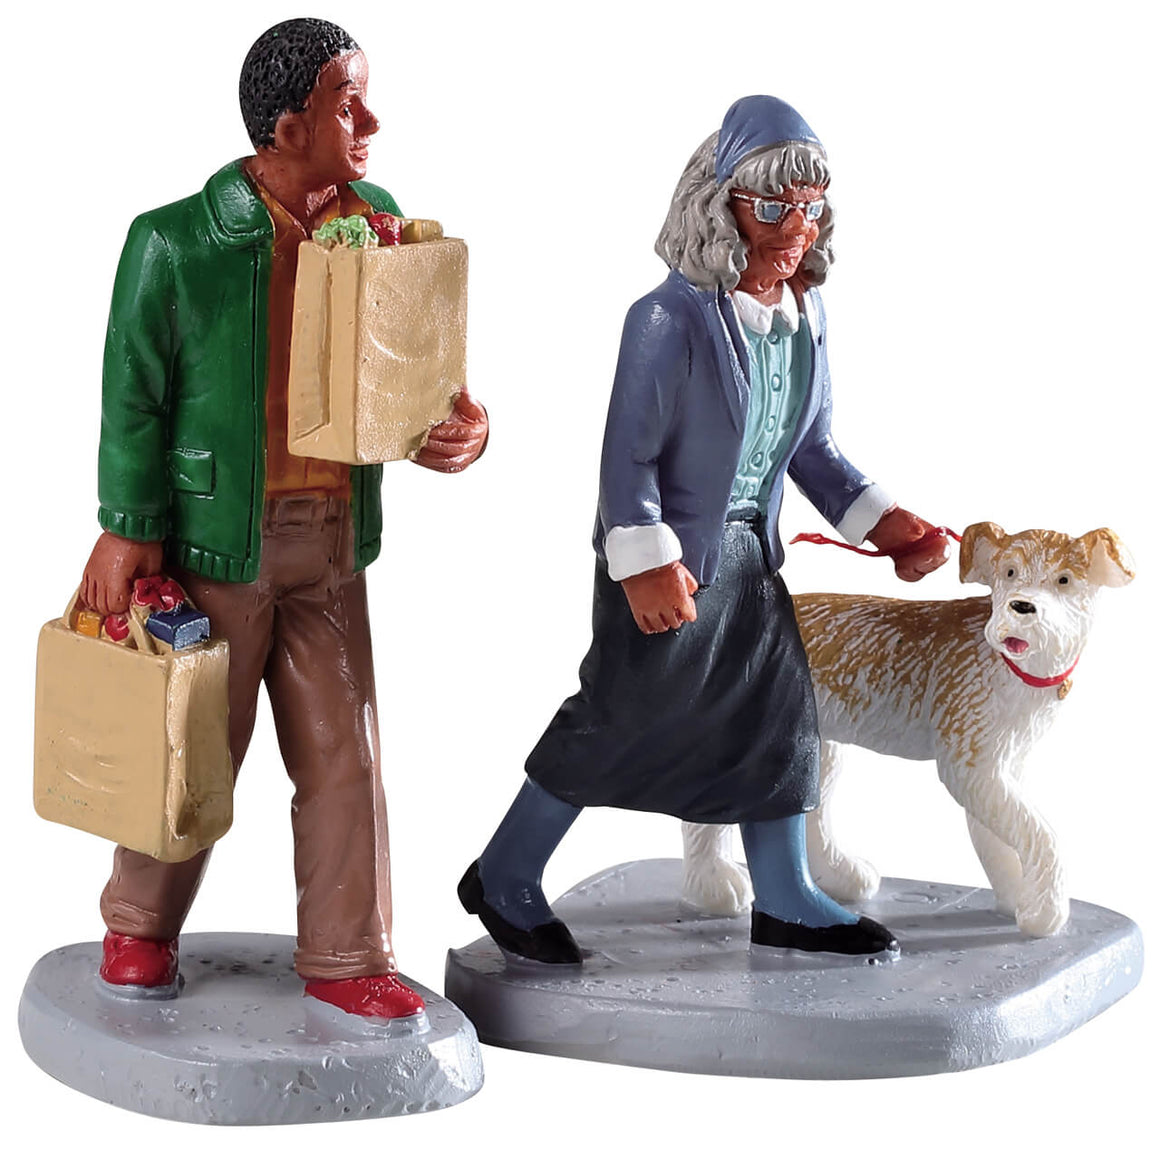 Lemax 92742 Happy To Help, Set of 2, Figurine- Gift Spice